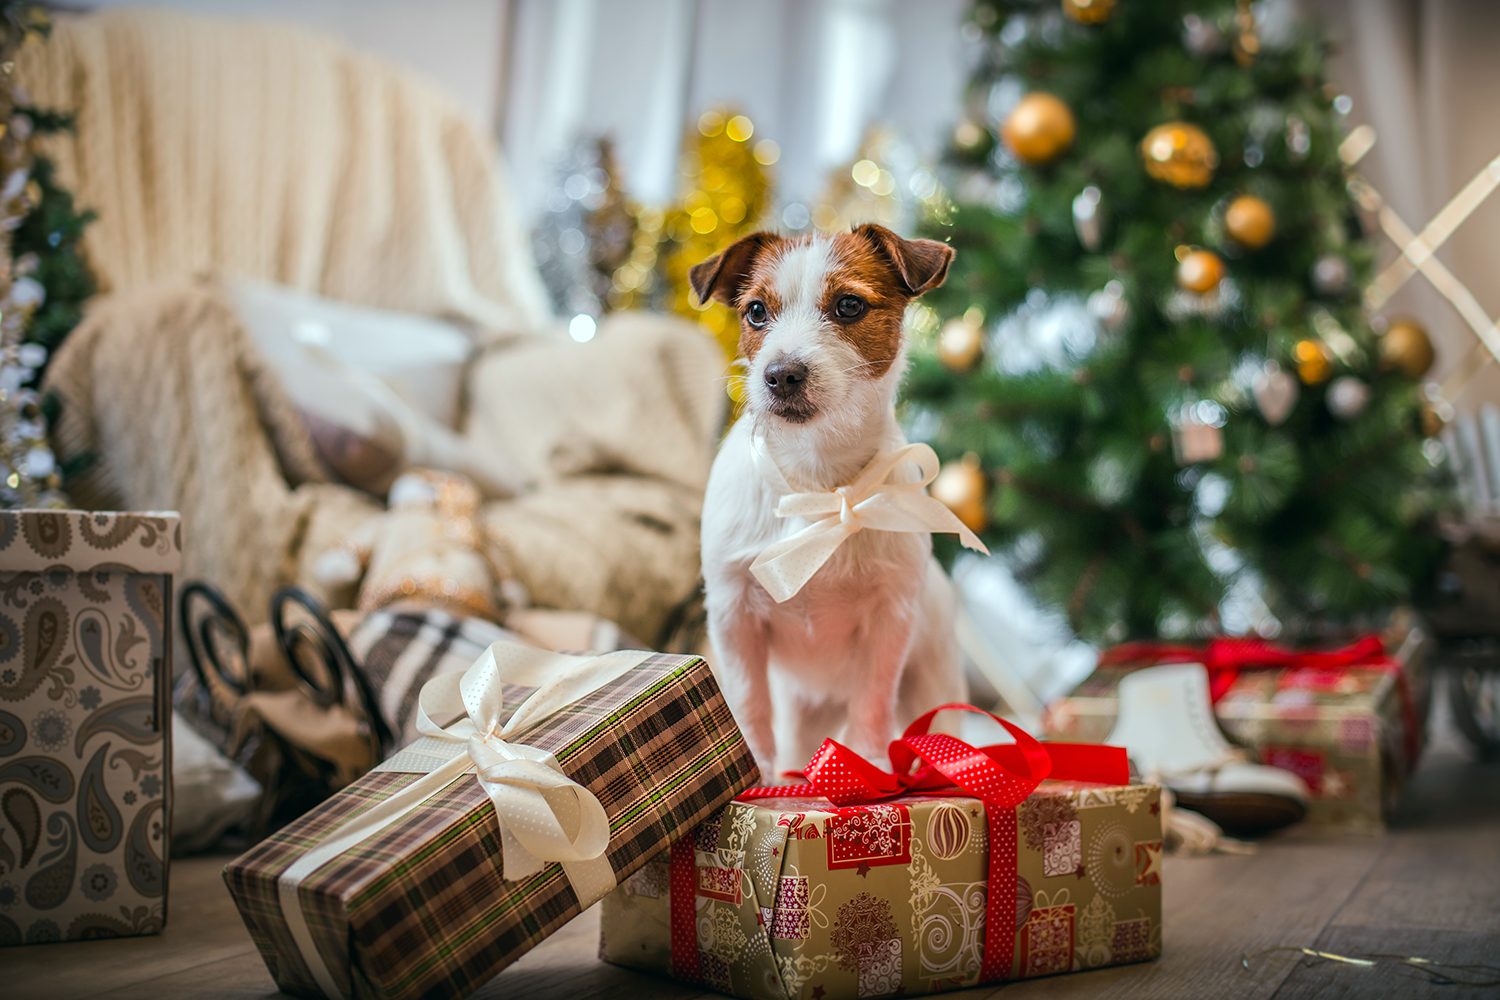 Christmas foods you really shouldn't give your dog